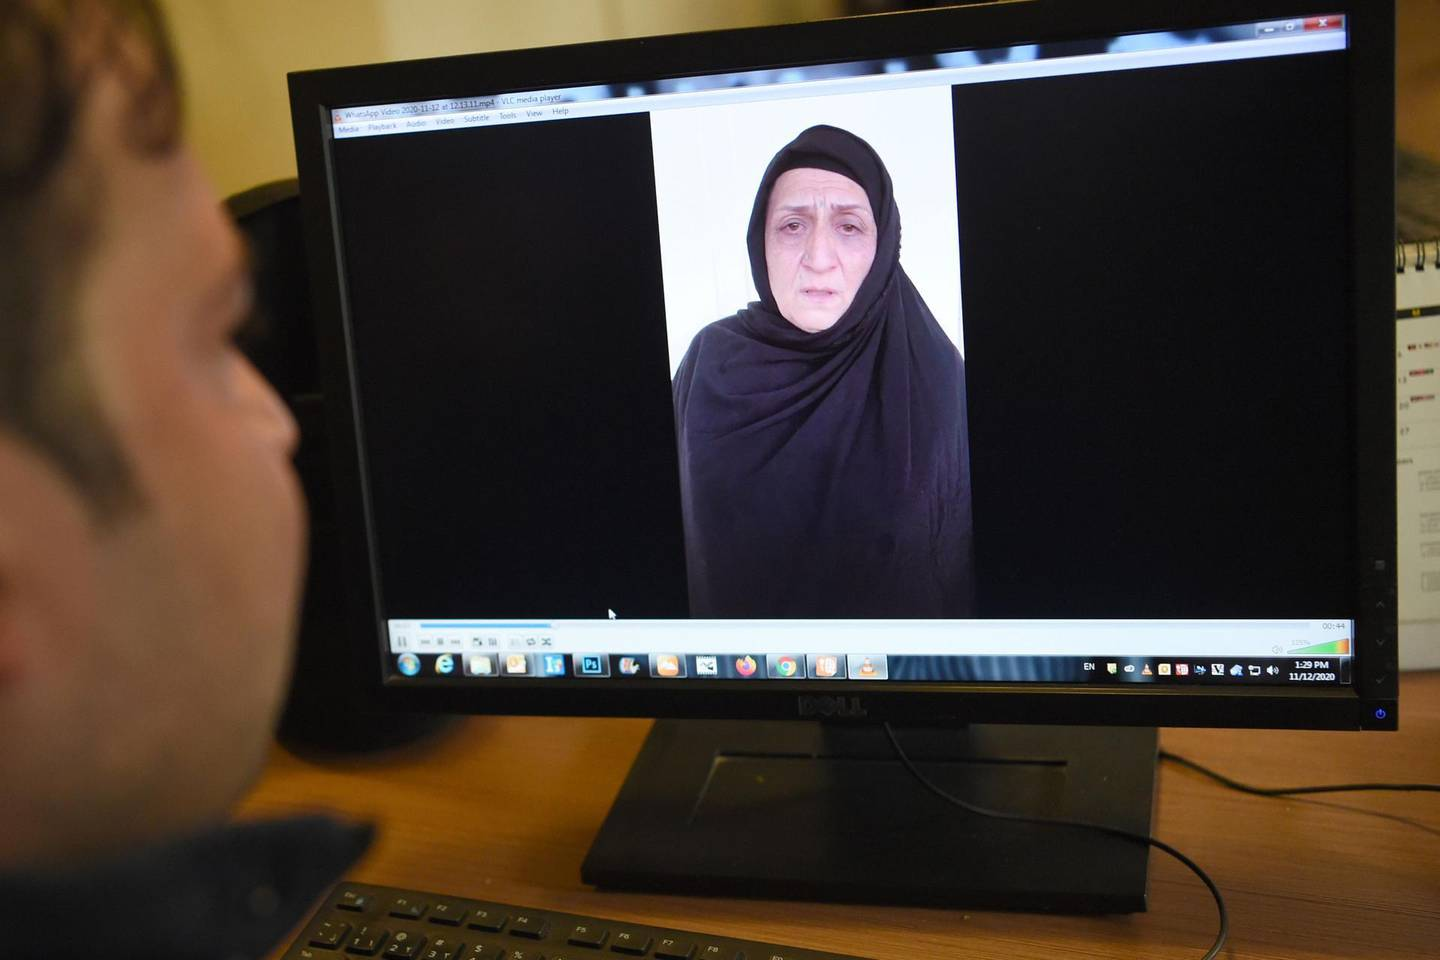 In this picture taken on November 12, 2020, a man watches a video of Afghan woman Nasreen, who walked free from jail in September after confessing to being members of the Taliban's ultra-violent Haqqani network, on a computer screen in Kabul. Female assassins who lured an Afghan security official to his death with promises of sex before shooting him and dumping his body at a cemetery are among thousands of Taliban criminals freed as part of a fragile peace plan. - TO GO WITH 'Afghanistan-conflict-Taliban-women-prisoners, FOCUS' by Elise BLANCHARD  / AFP / Wakil KOHSAR / TO GO WITH 'Afghanistan-conflict-Taliban-women-prisoners, FOCUS' by Elise BLANCHARD